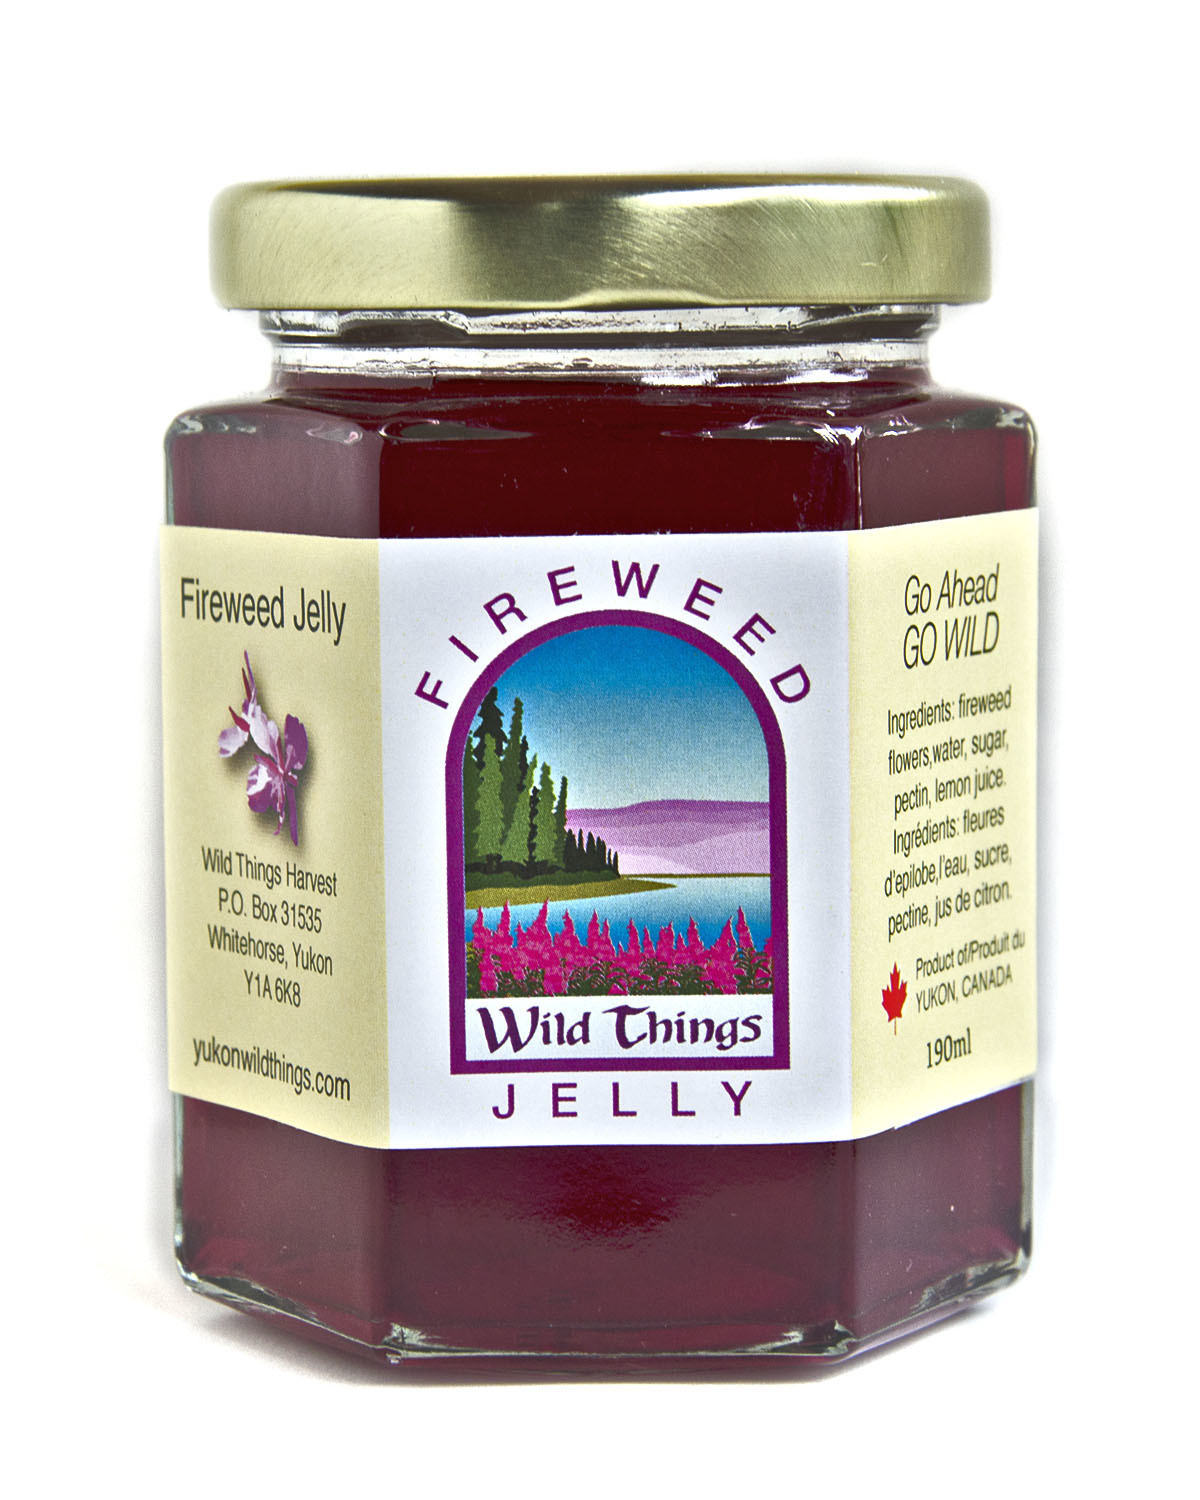 Fireweed Jelly (Large)